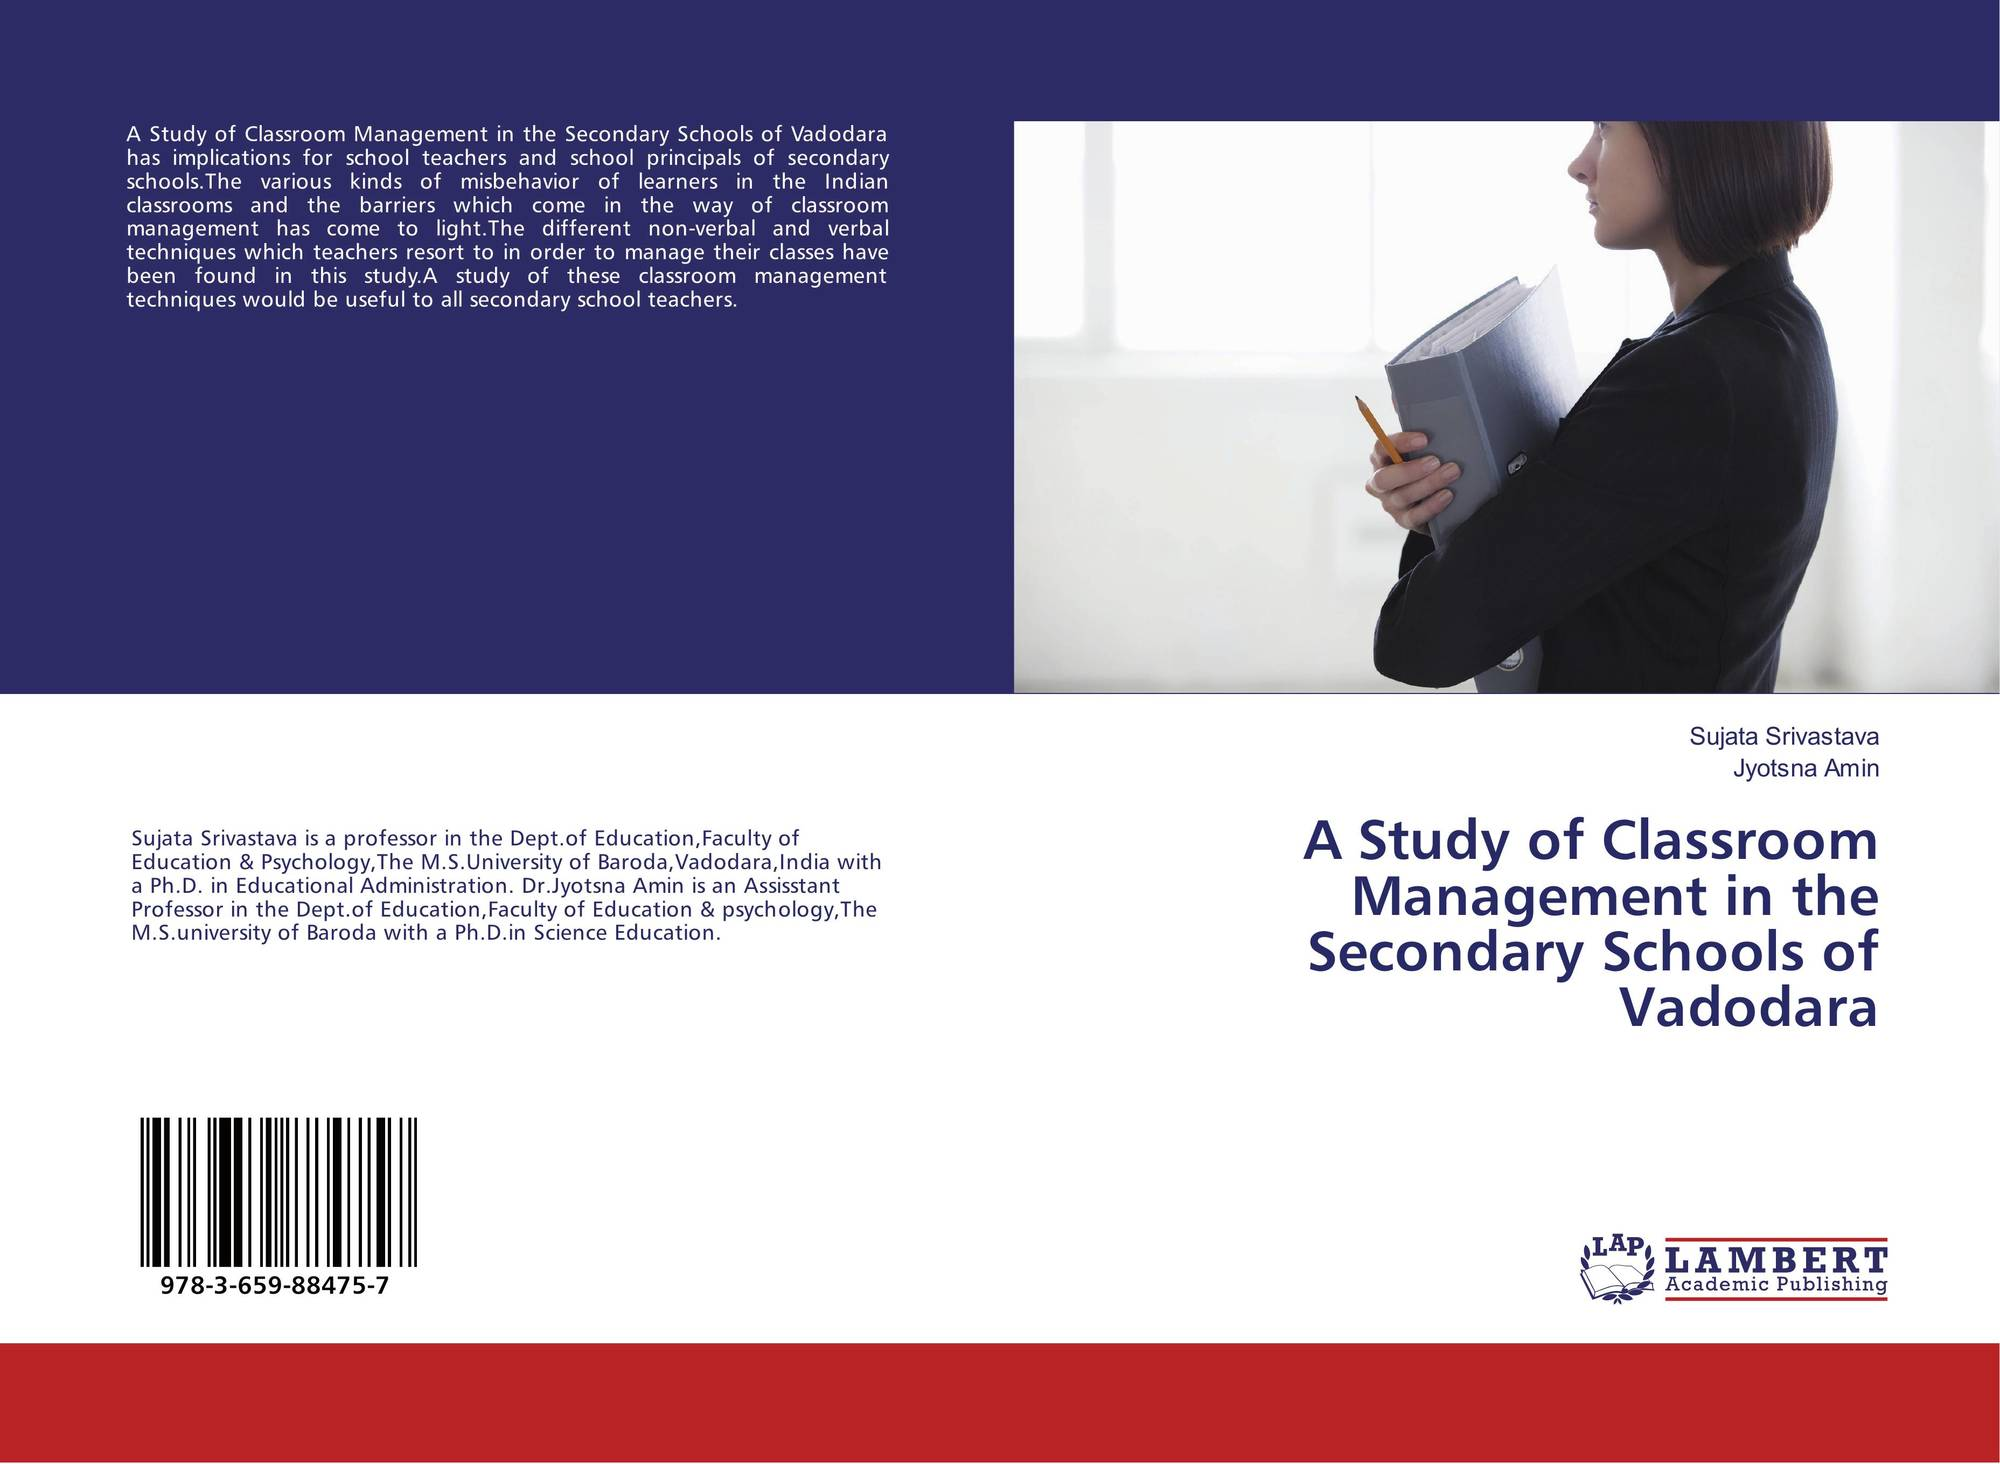 a study of classroom management Self-efficacy and classroom management: a correlation study regarding the factors that influence classroom management abstract classroom management has proved to be a plaguing aspect of the teaching and learning.